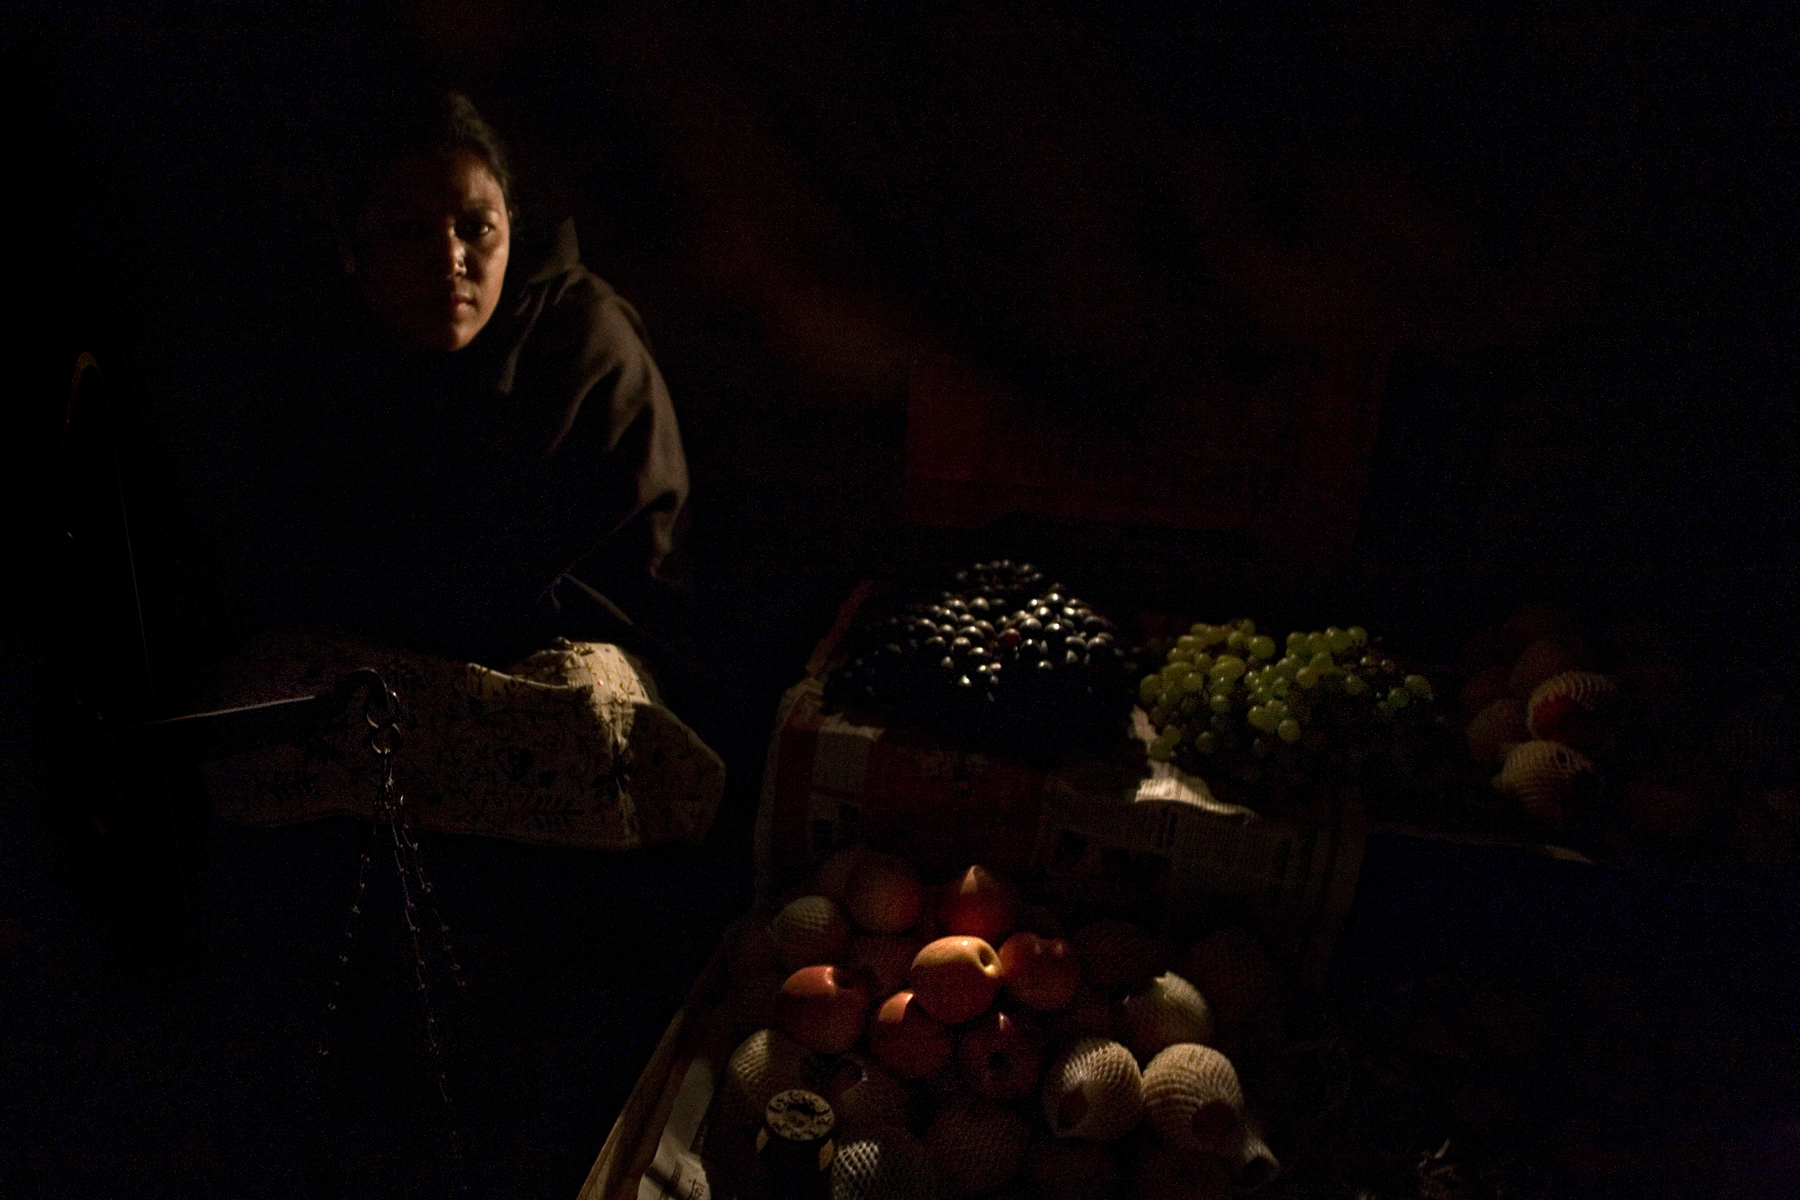 {quote}Ruchi{quote}, a mother of five, sells fruit on the side of the road leading out from Kathmandu, Nepal.